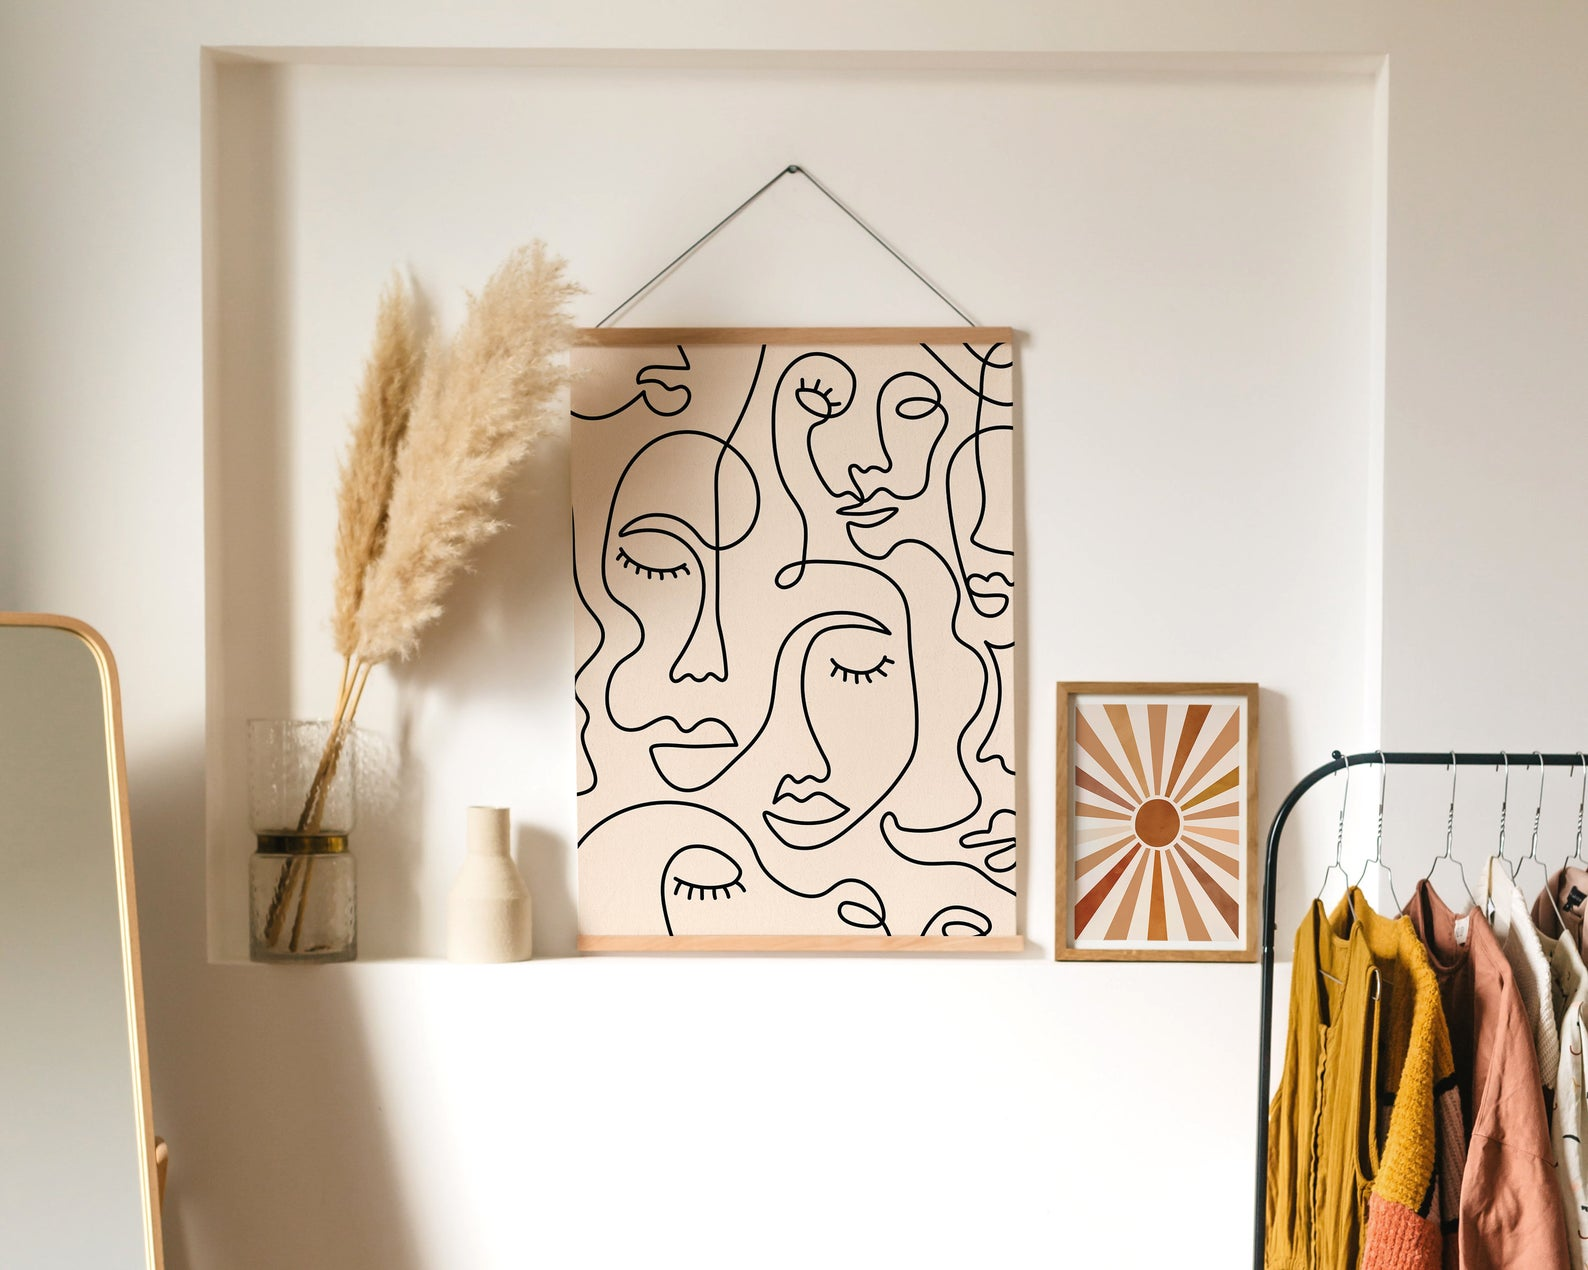 line art poster next to neutral vases and decor